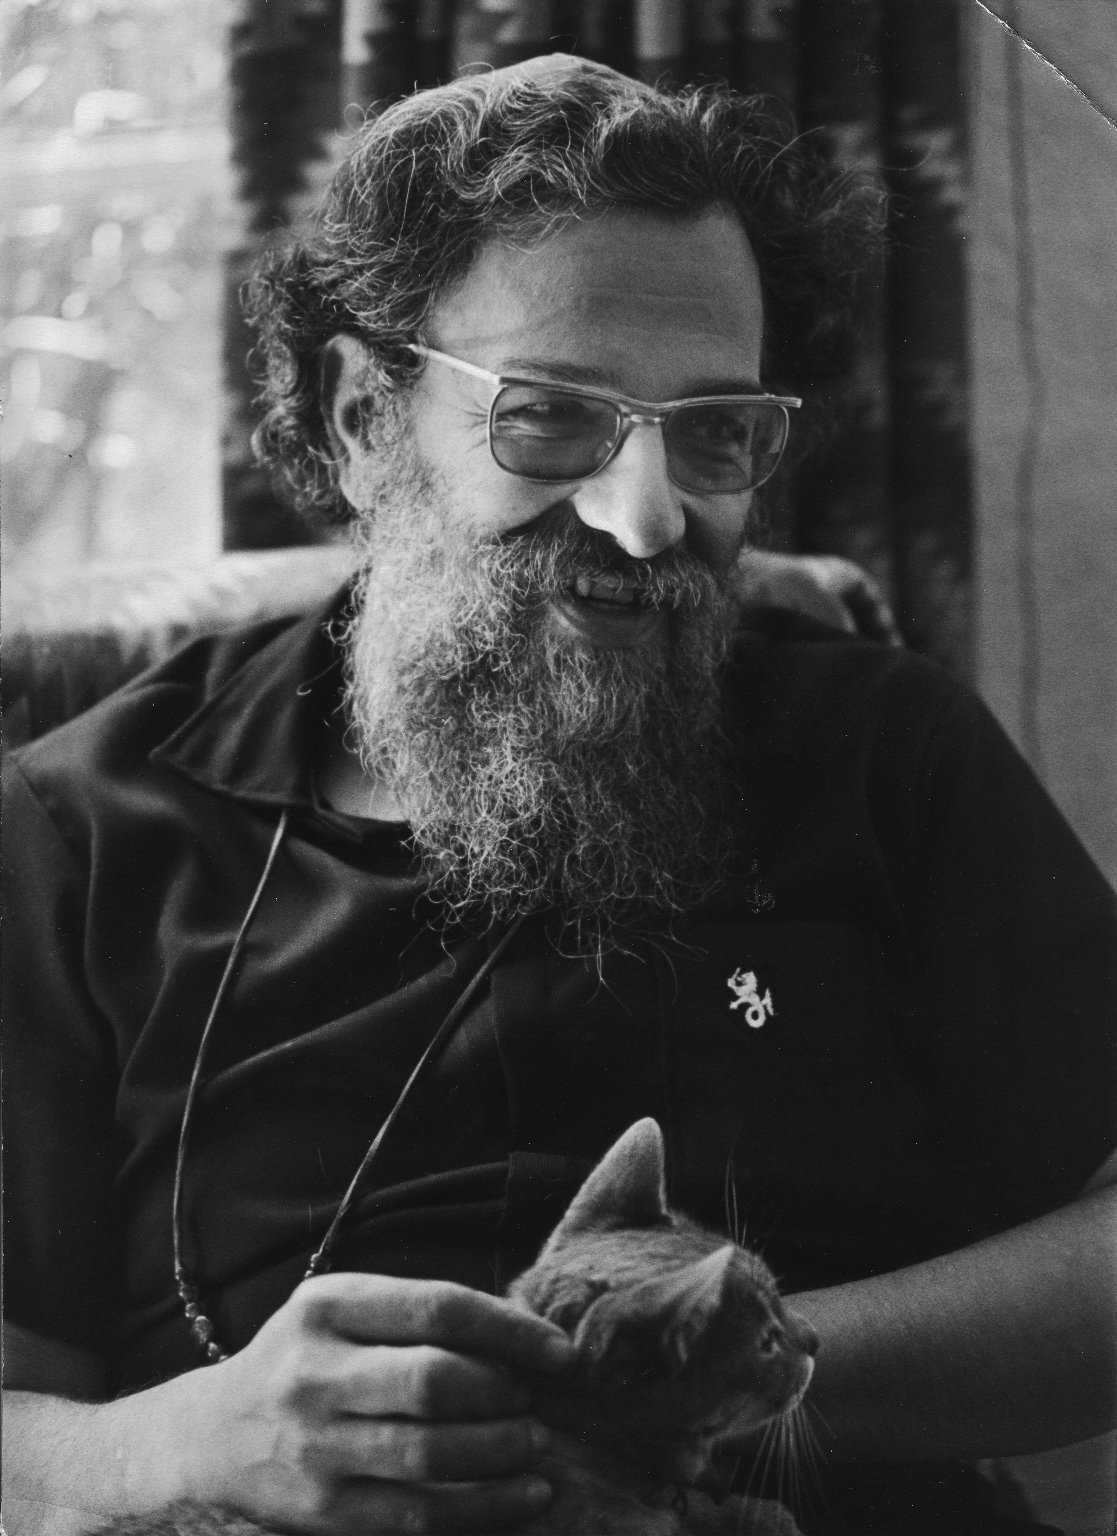 Rabbi Zalman Schachter with a cat in his lap, ca. 1975.